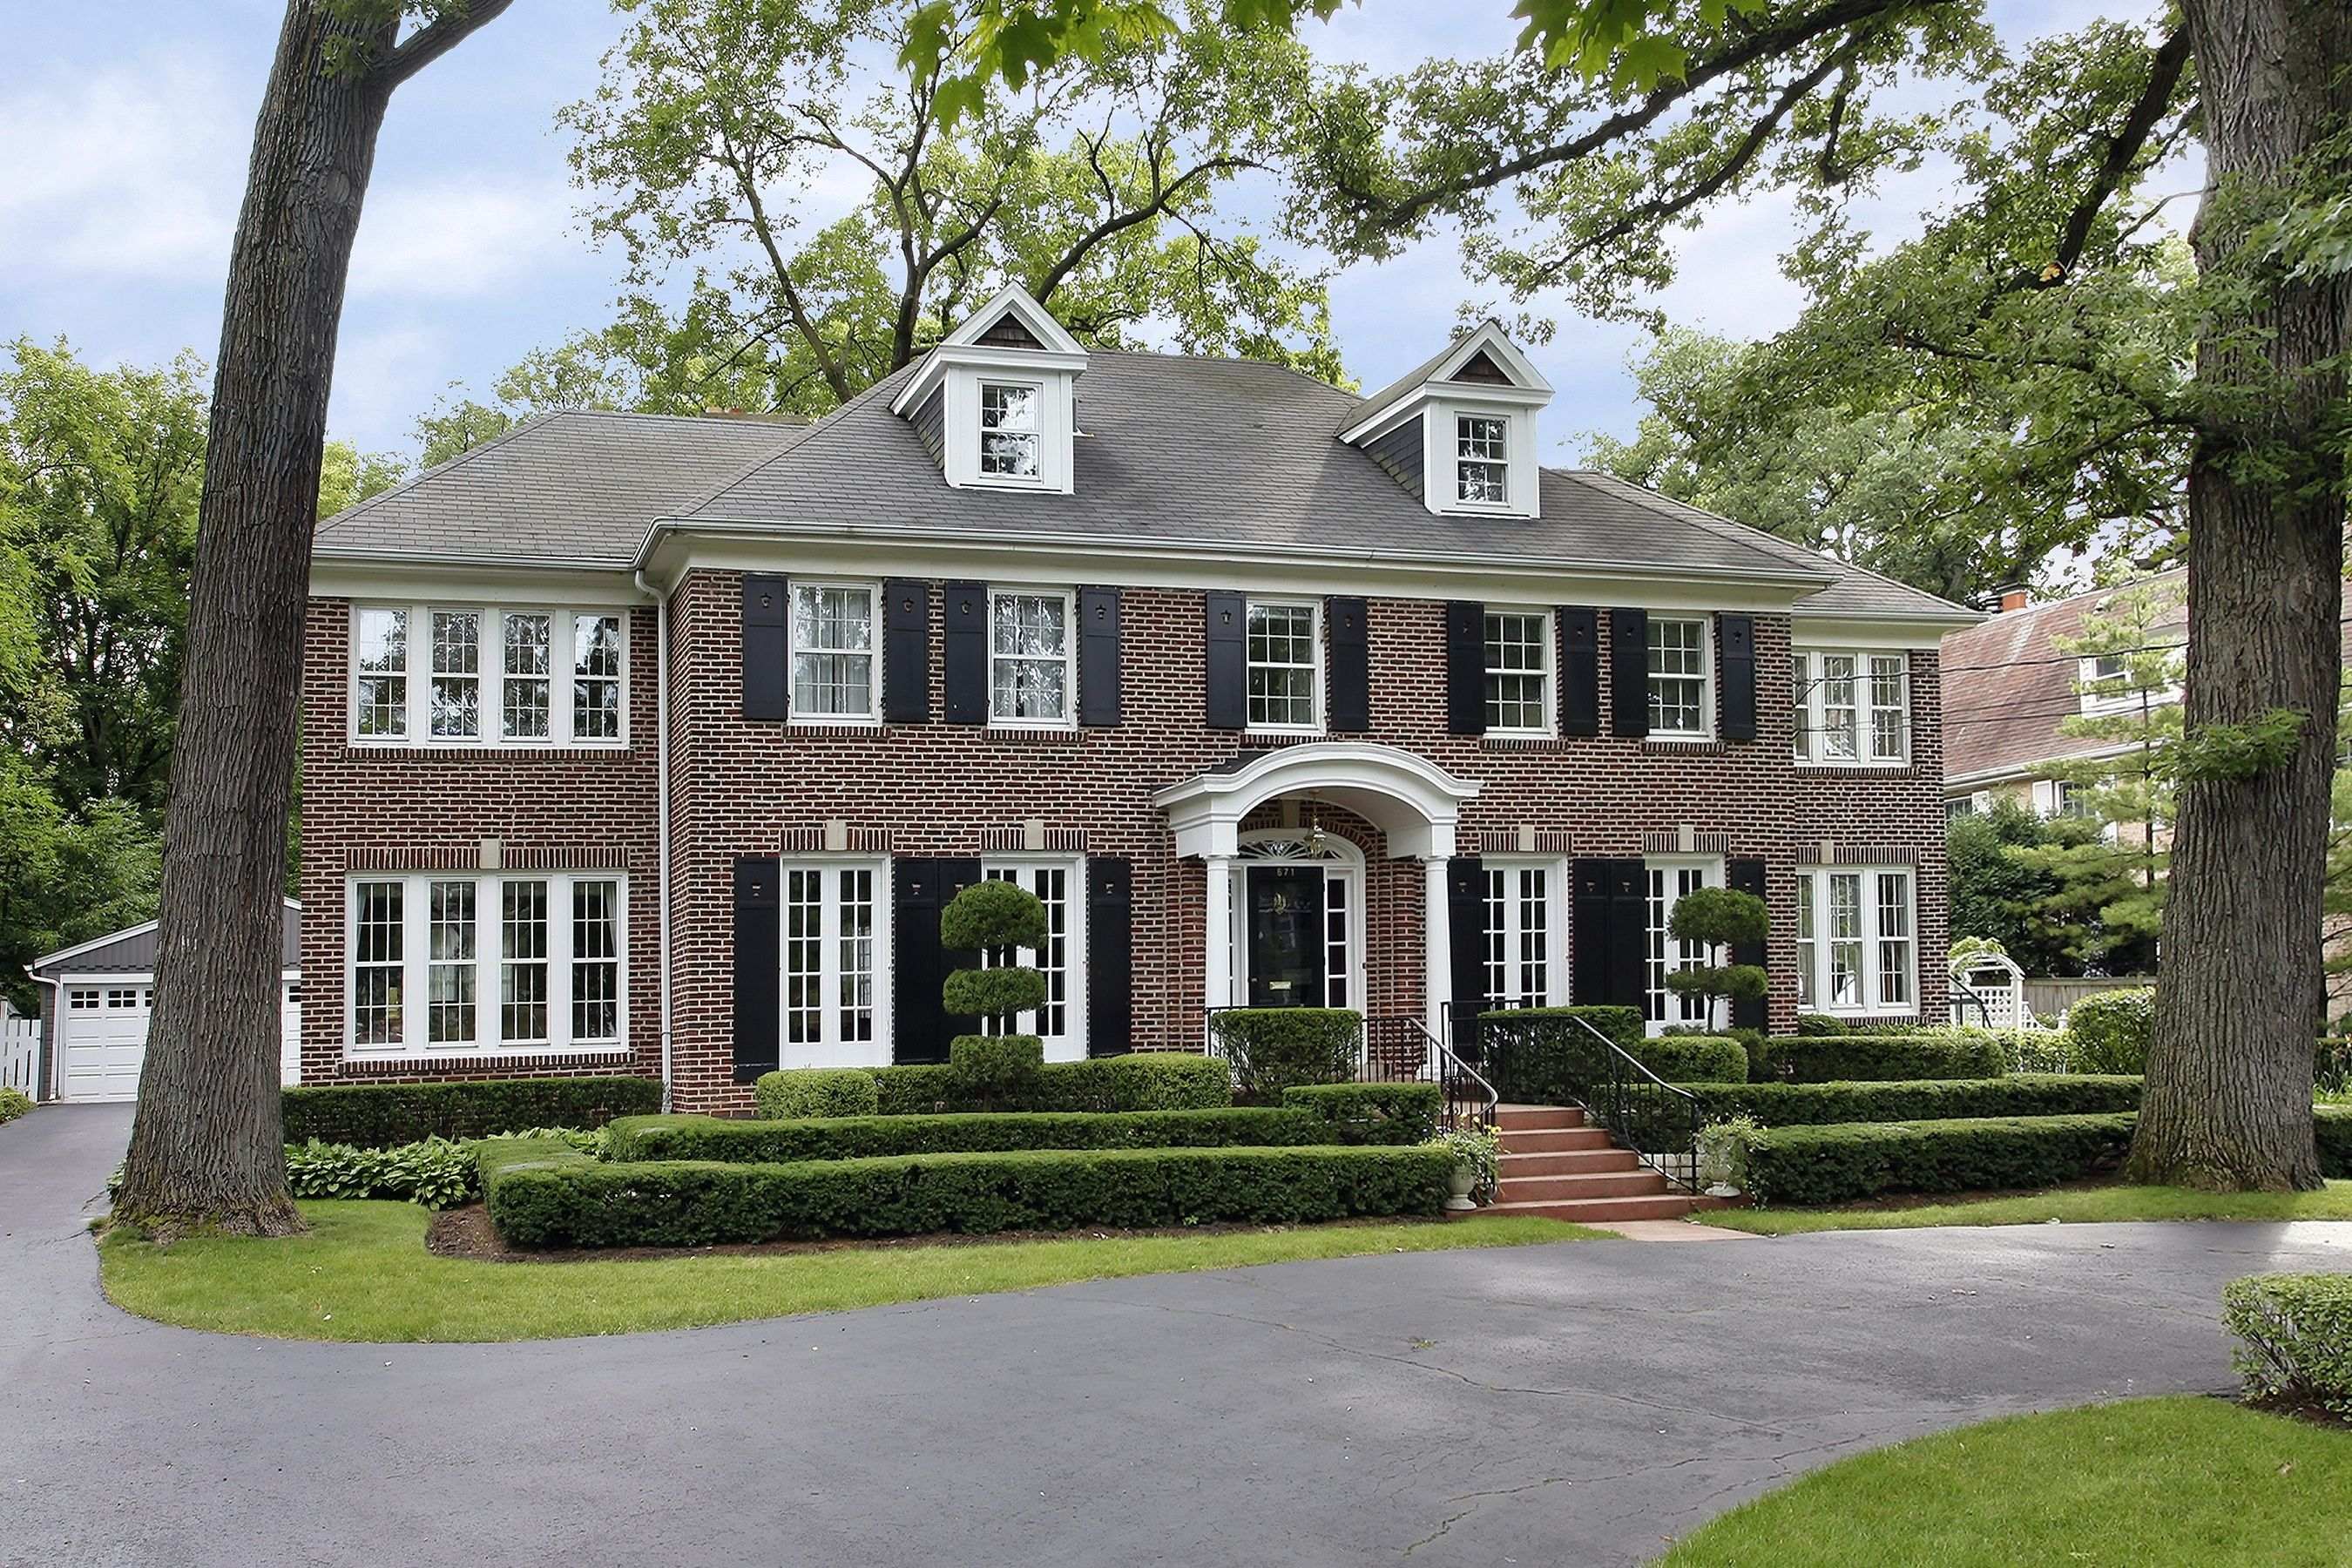 Famous Movie House Home Alone Is Sold Home Alone House Styles